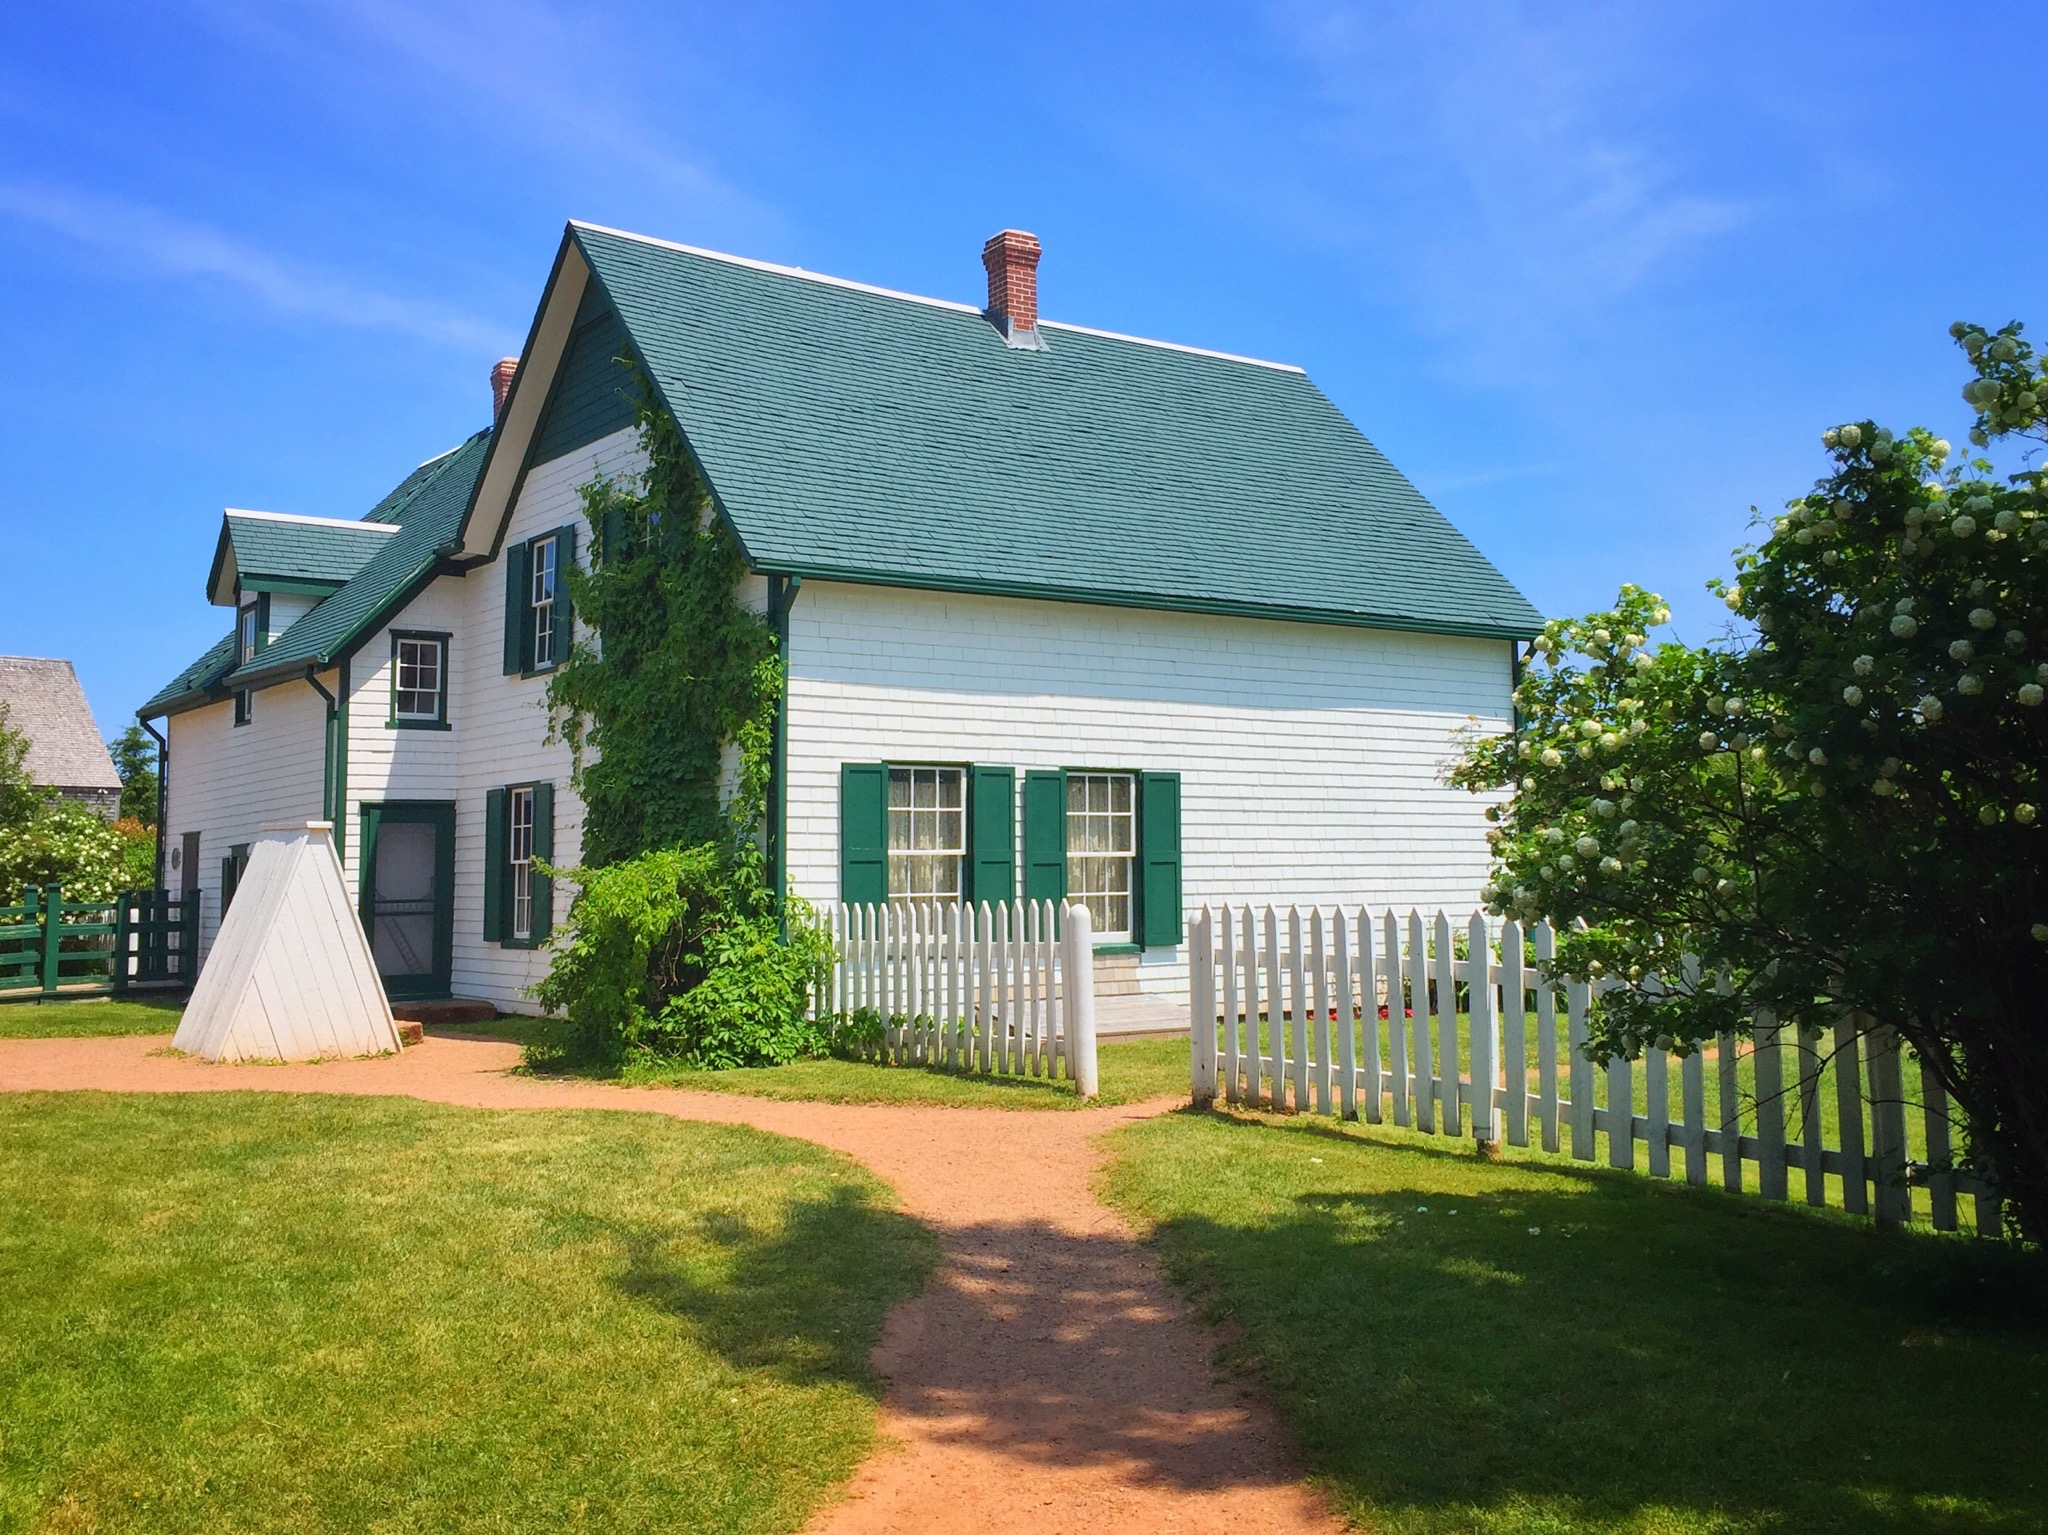 Green Gables